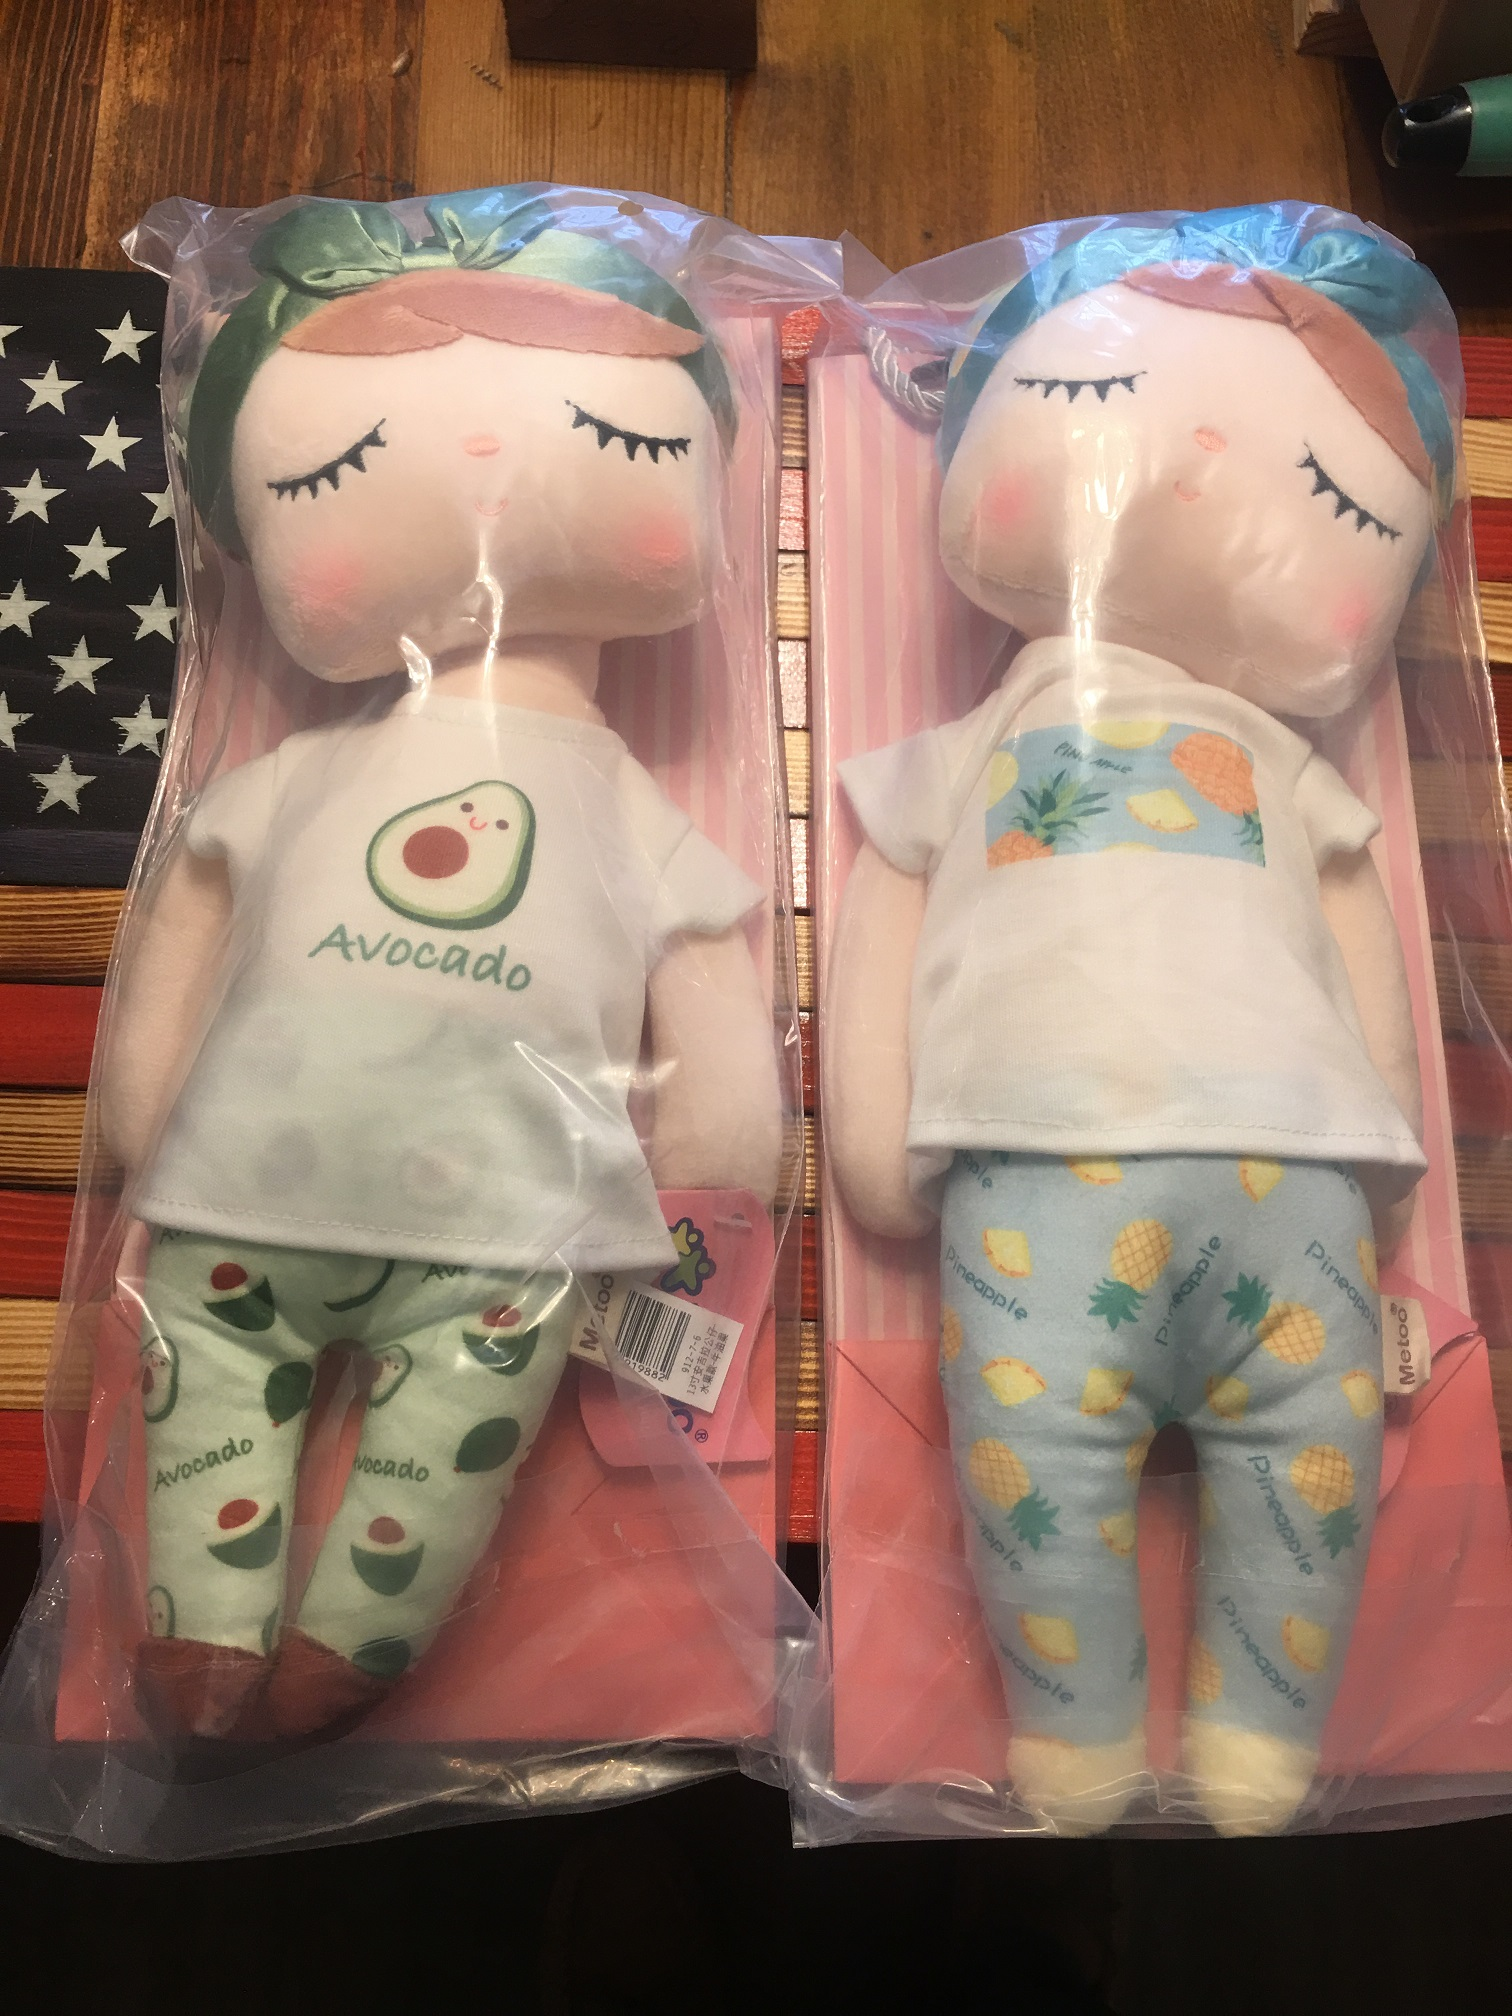 Stuffed plush baby dolls for the granddaughters